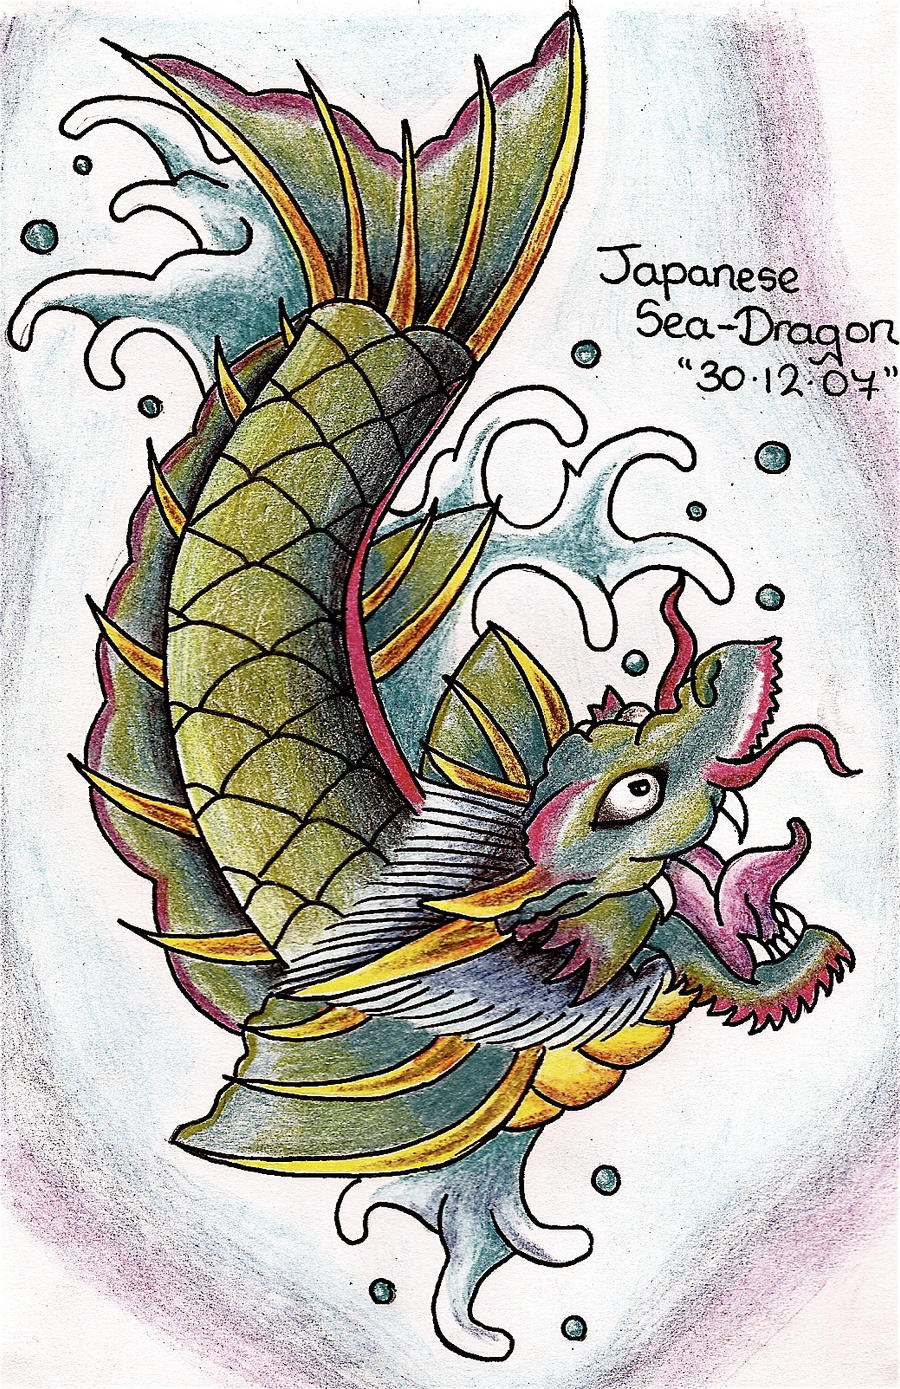 Japanese sea dragon by kimberleyfox on deviantart for Sea dragon tattoo